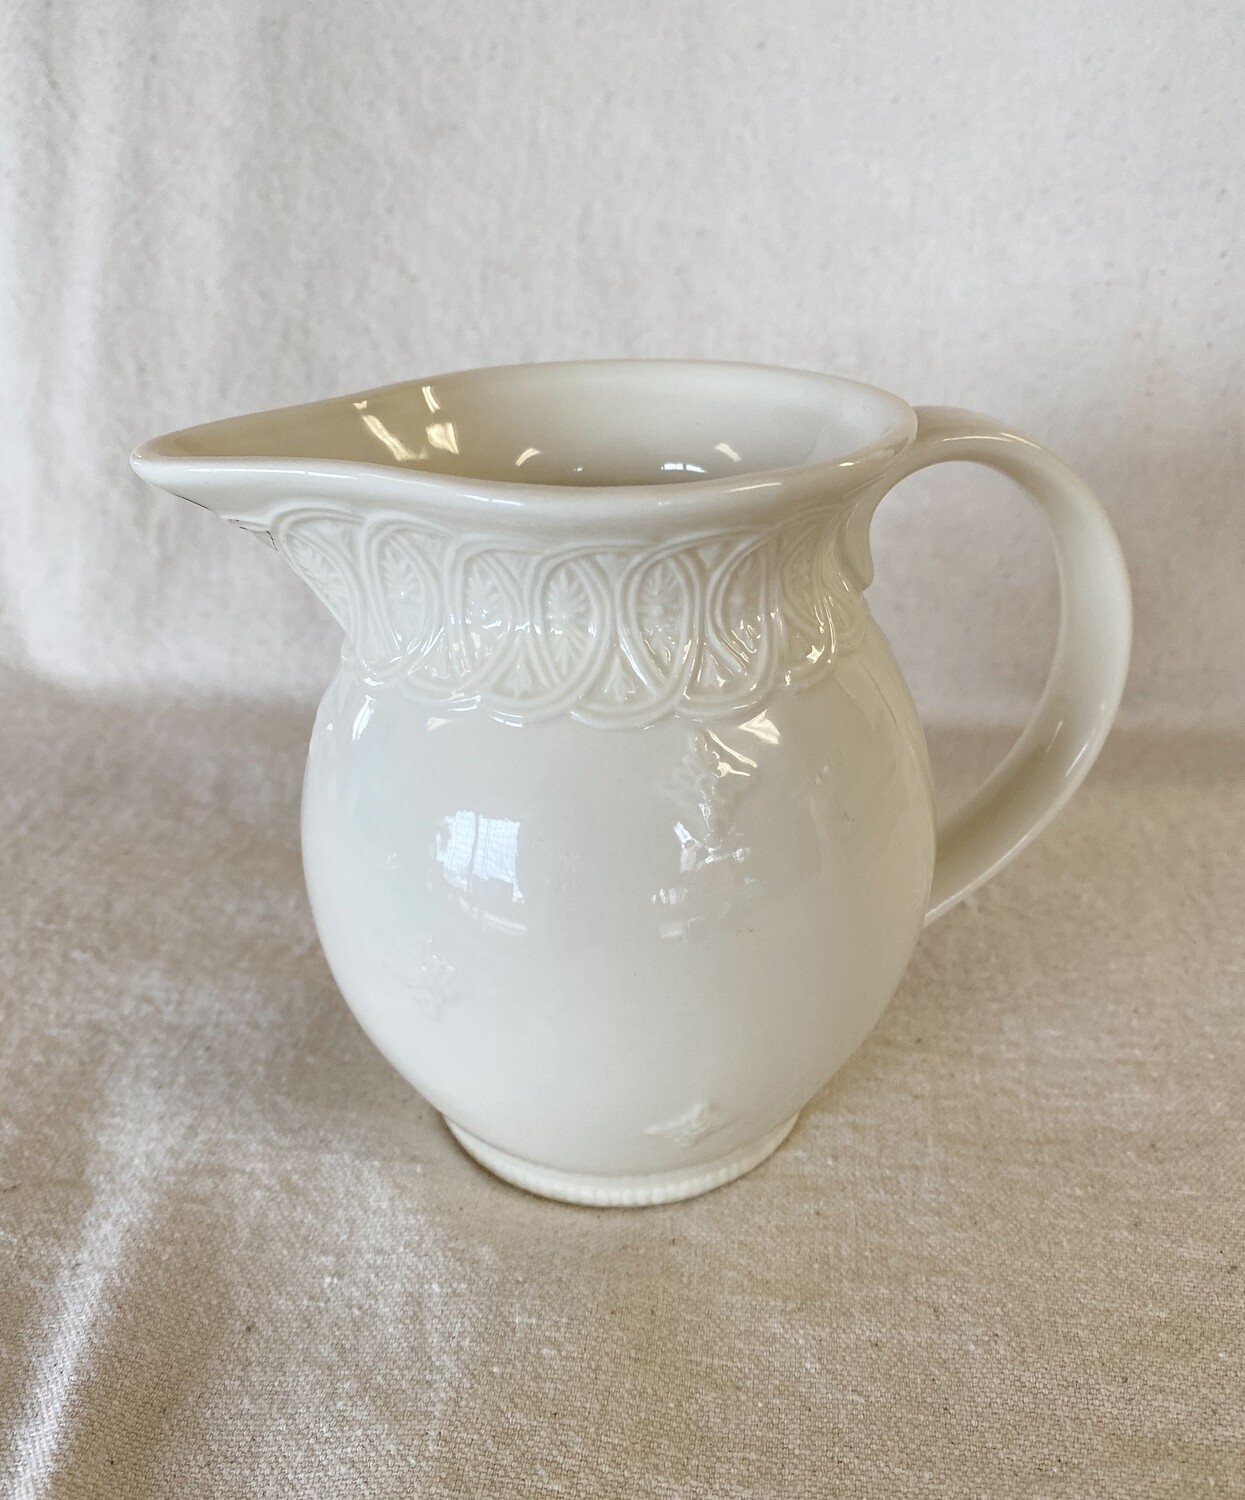 Two's Company Creamware Pitcher